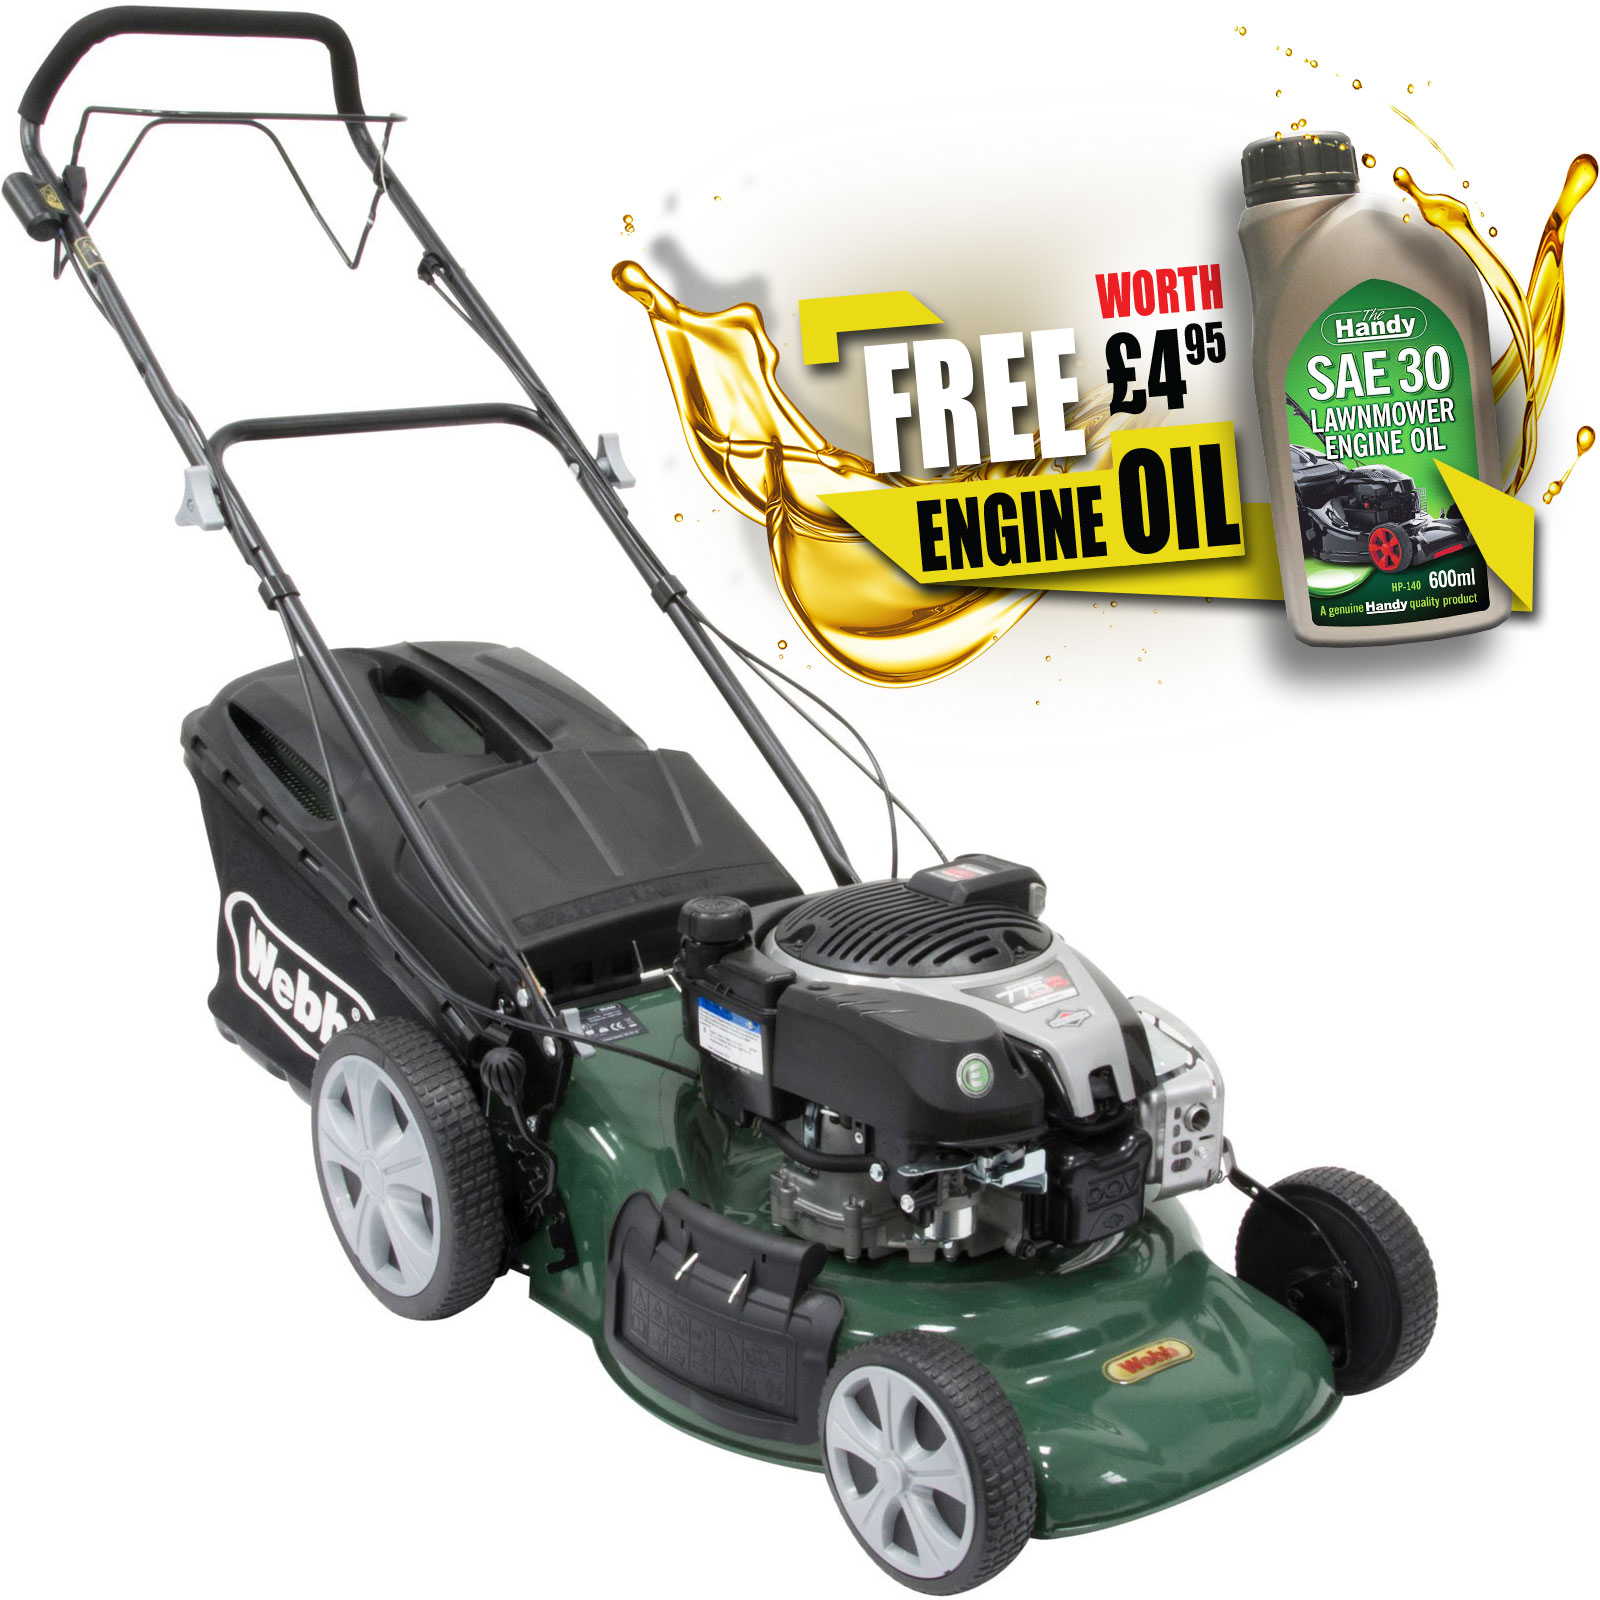 Image of Webb WER18SPES Self Propelled Petrol Rotary Lawnmower 460mm FREE Engine Oil Worth £4.95